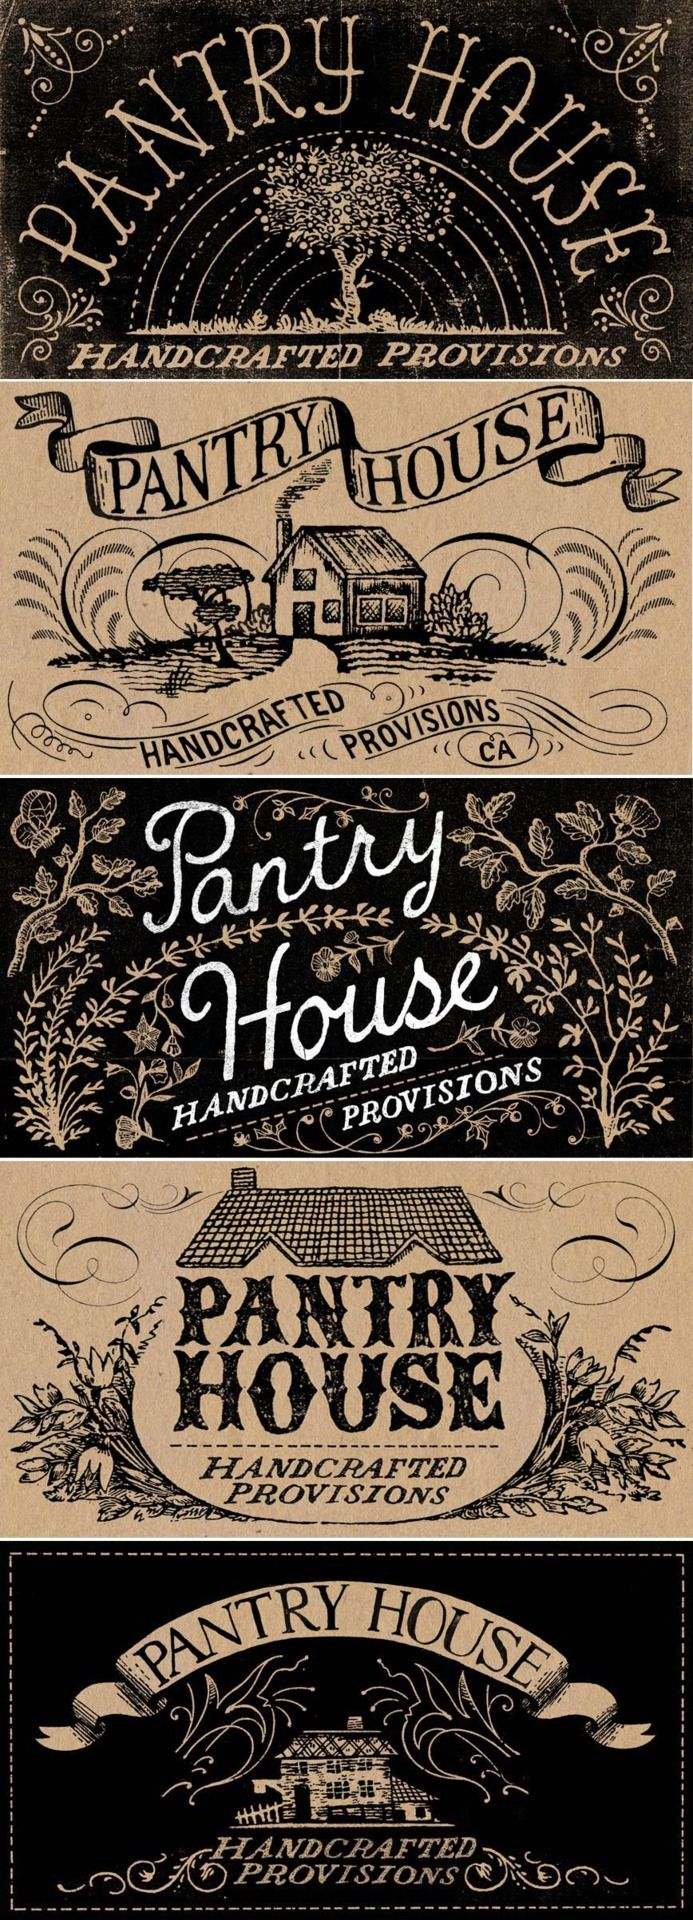 HANDCRAFTED PROVISIONS  Don't mock the artisanal pickle makers. Pantry House is a small batch canning company in Santa Cruz, California. They asked me to design the labels for their jams, mustards, and pickles. These are just a few of the initial ideas.